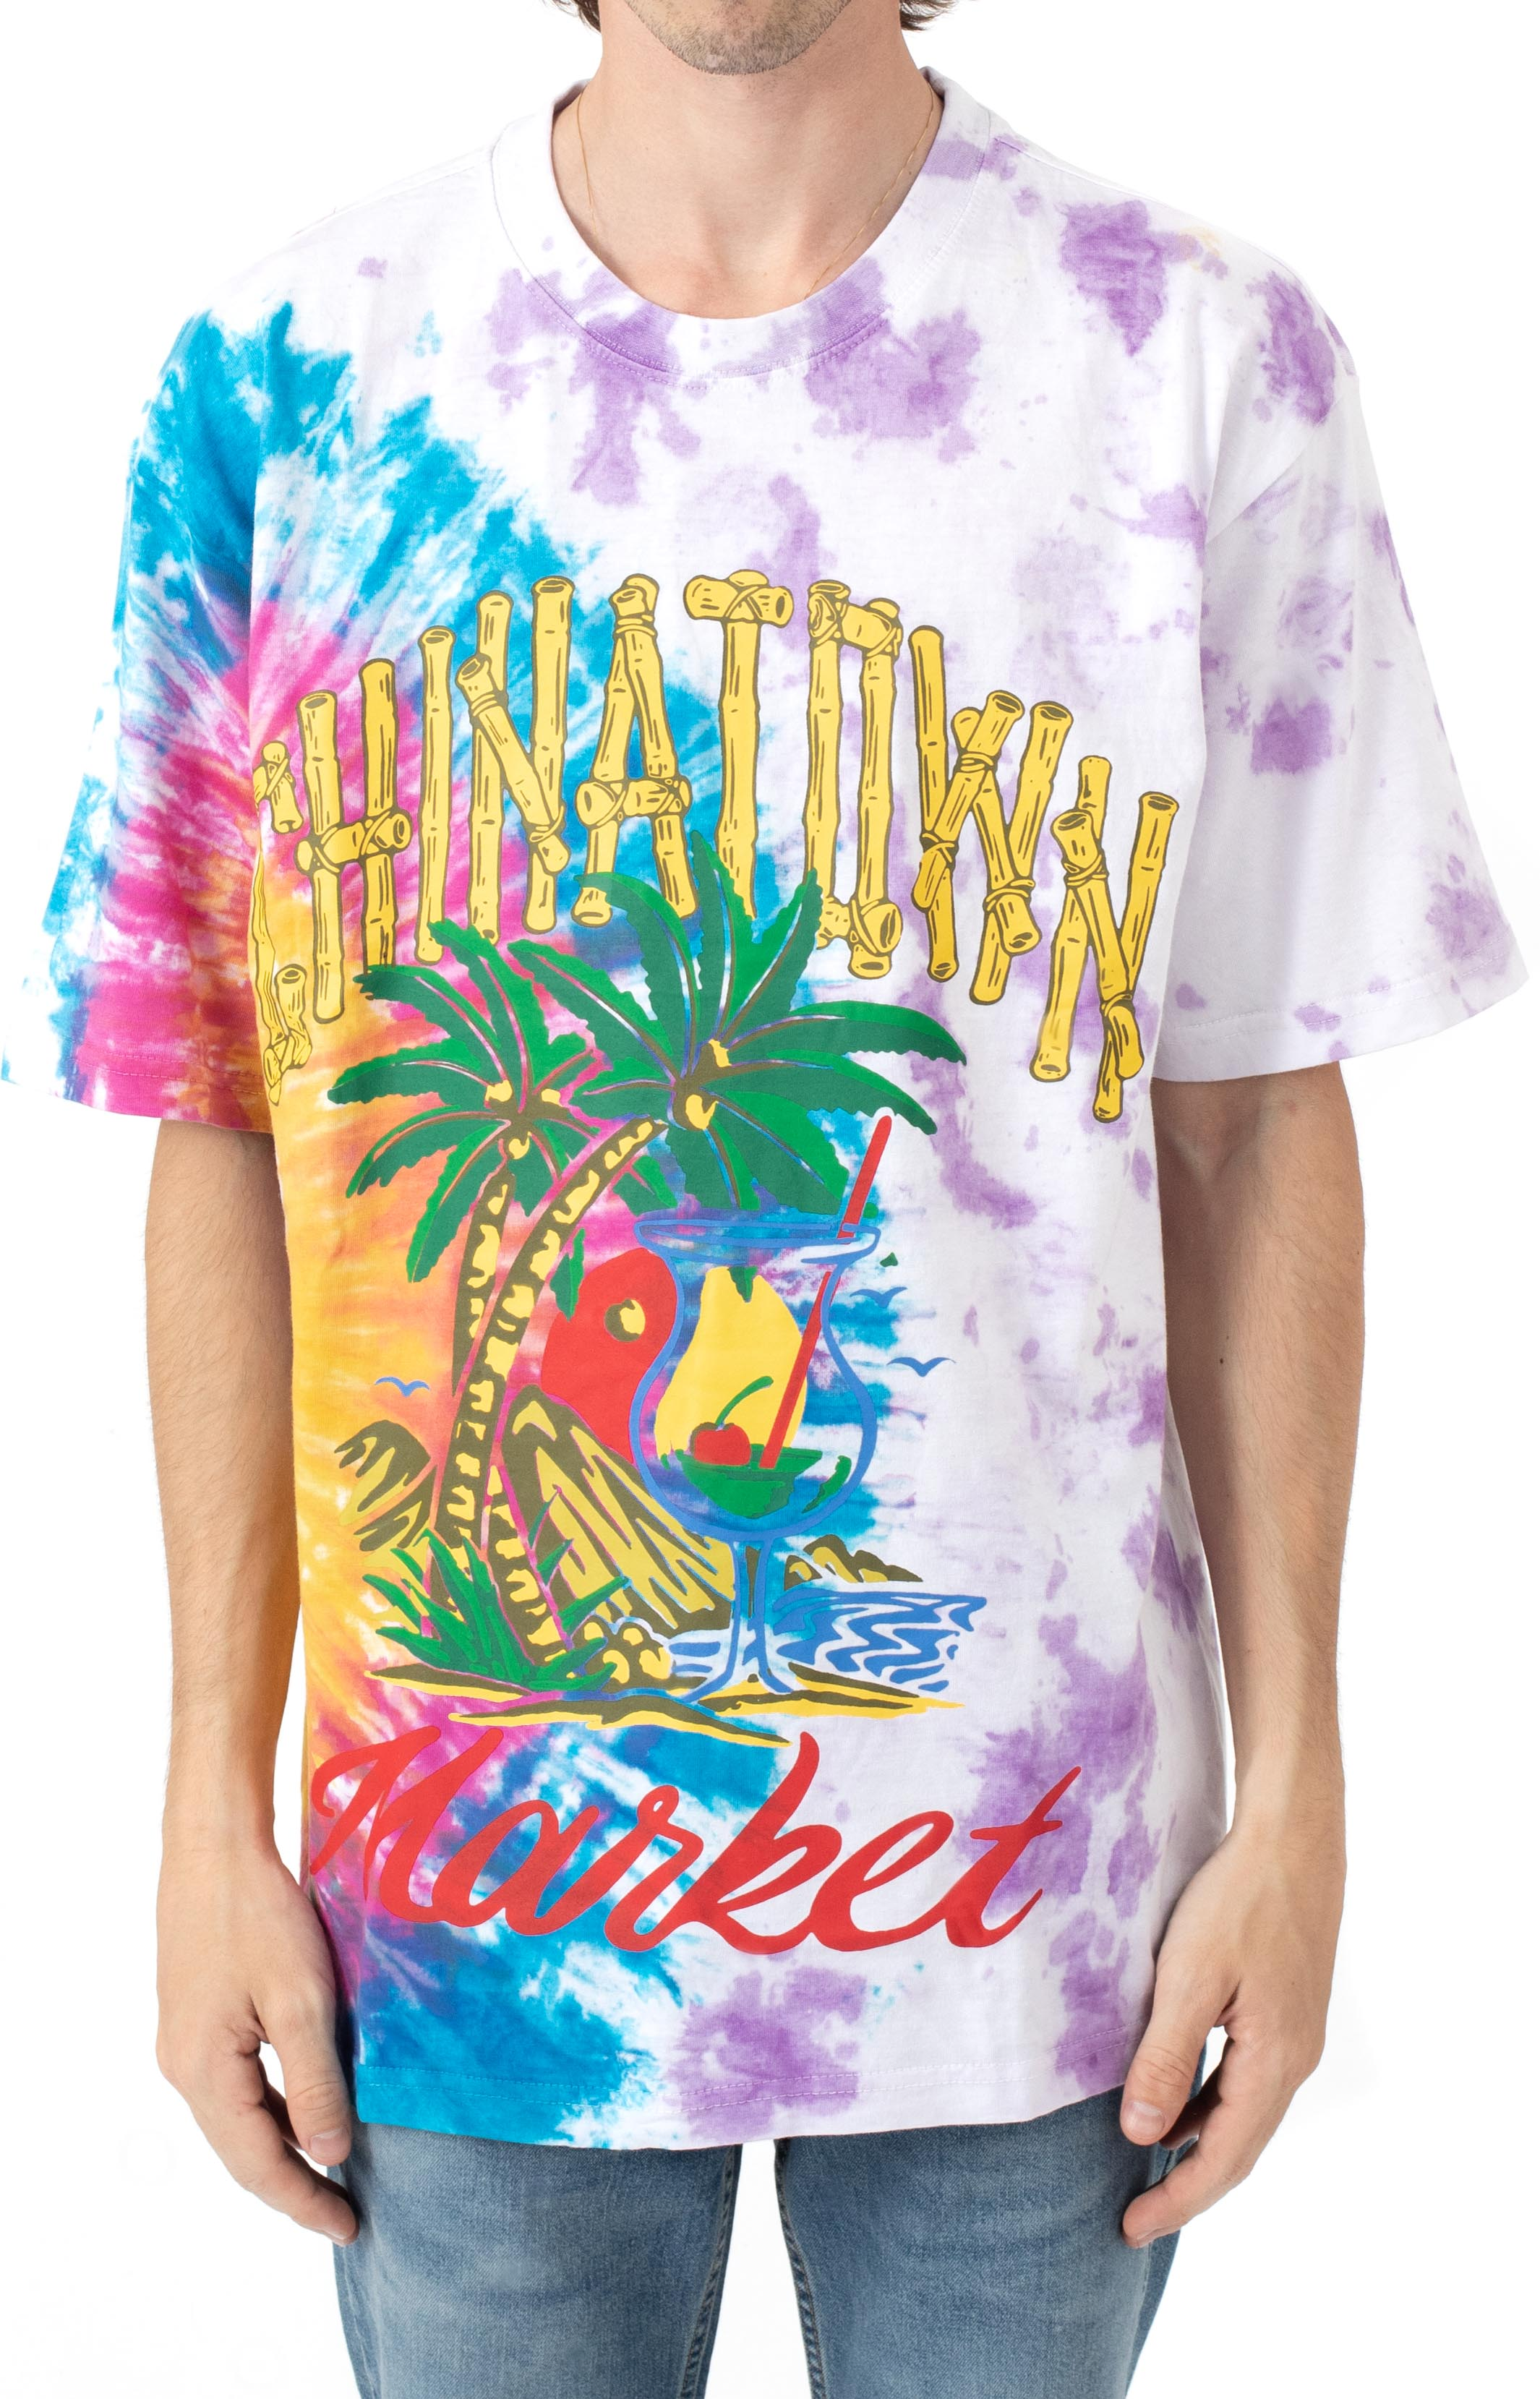 By The Water T-Shirt - Tie-Dye